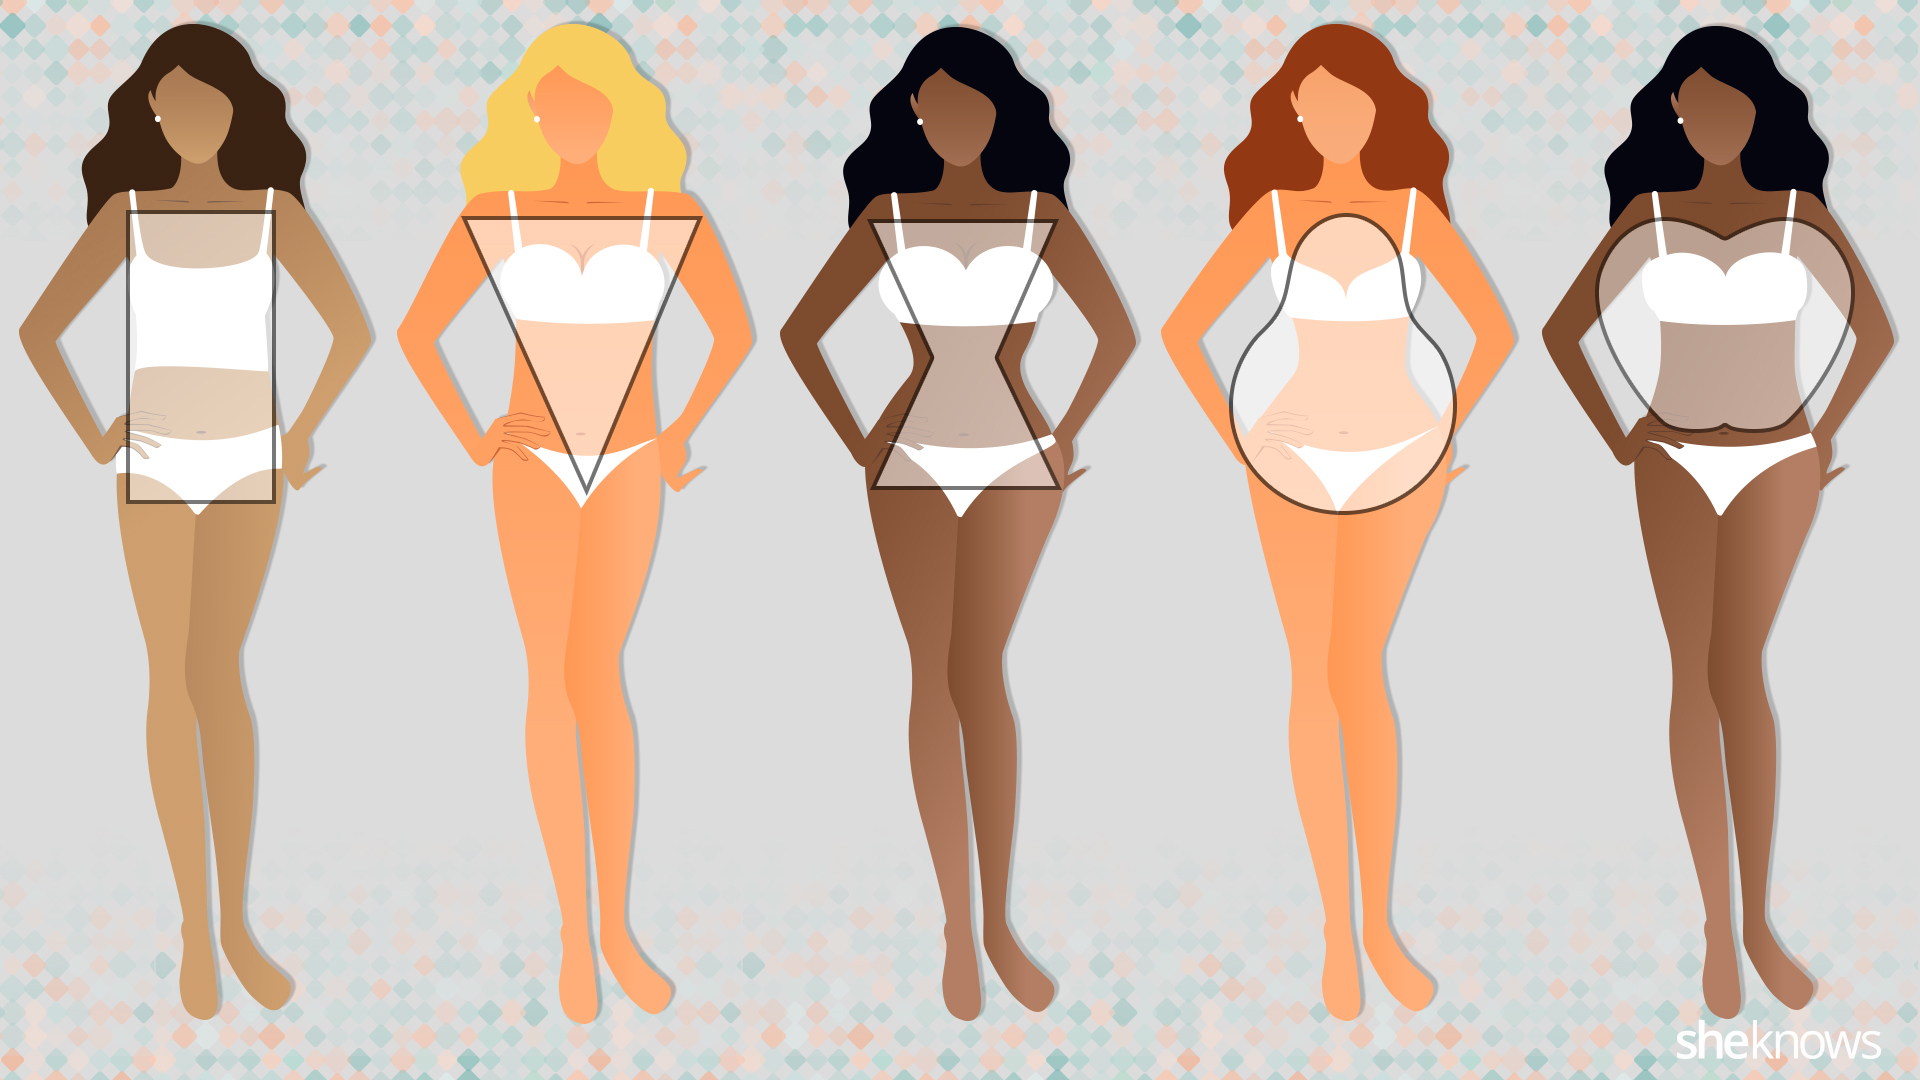 3609be4866db4 A Handy Dandy Guide to Help You Finally Figure Out Which Body Shape You Are